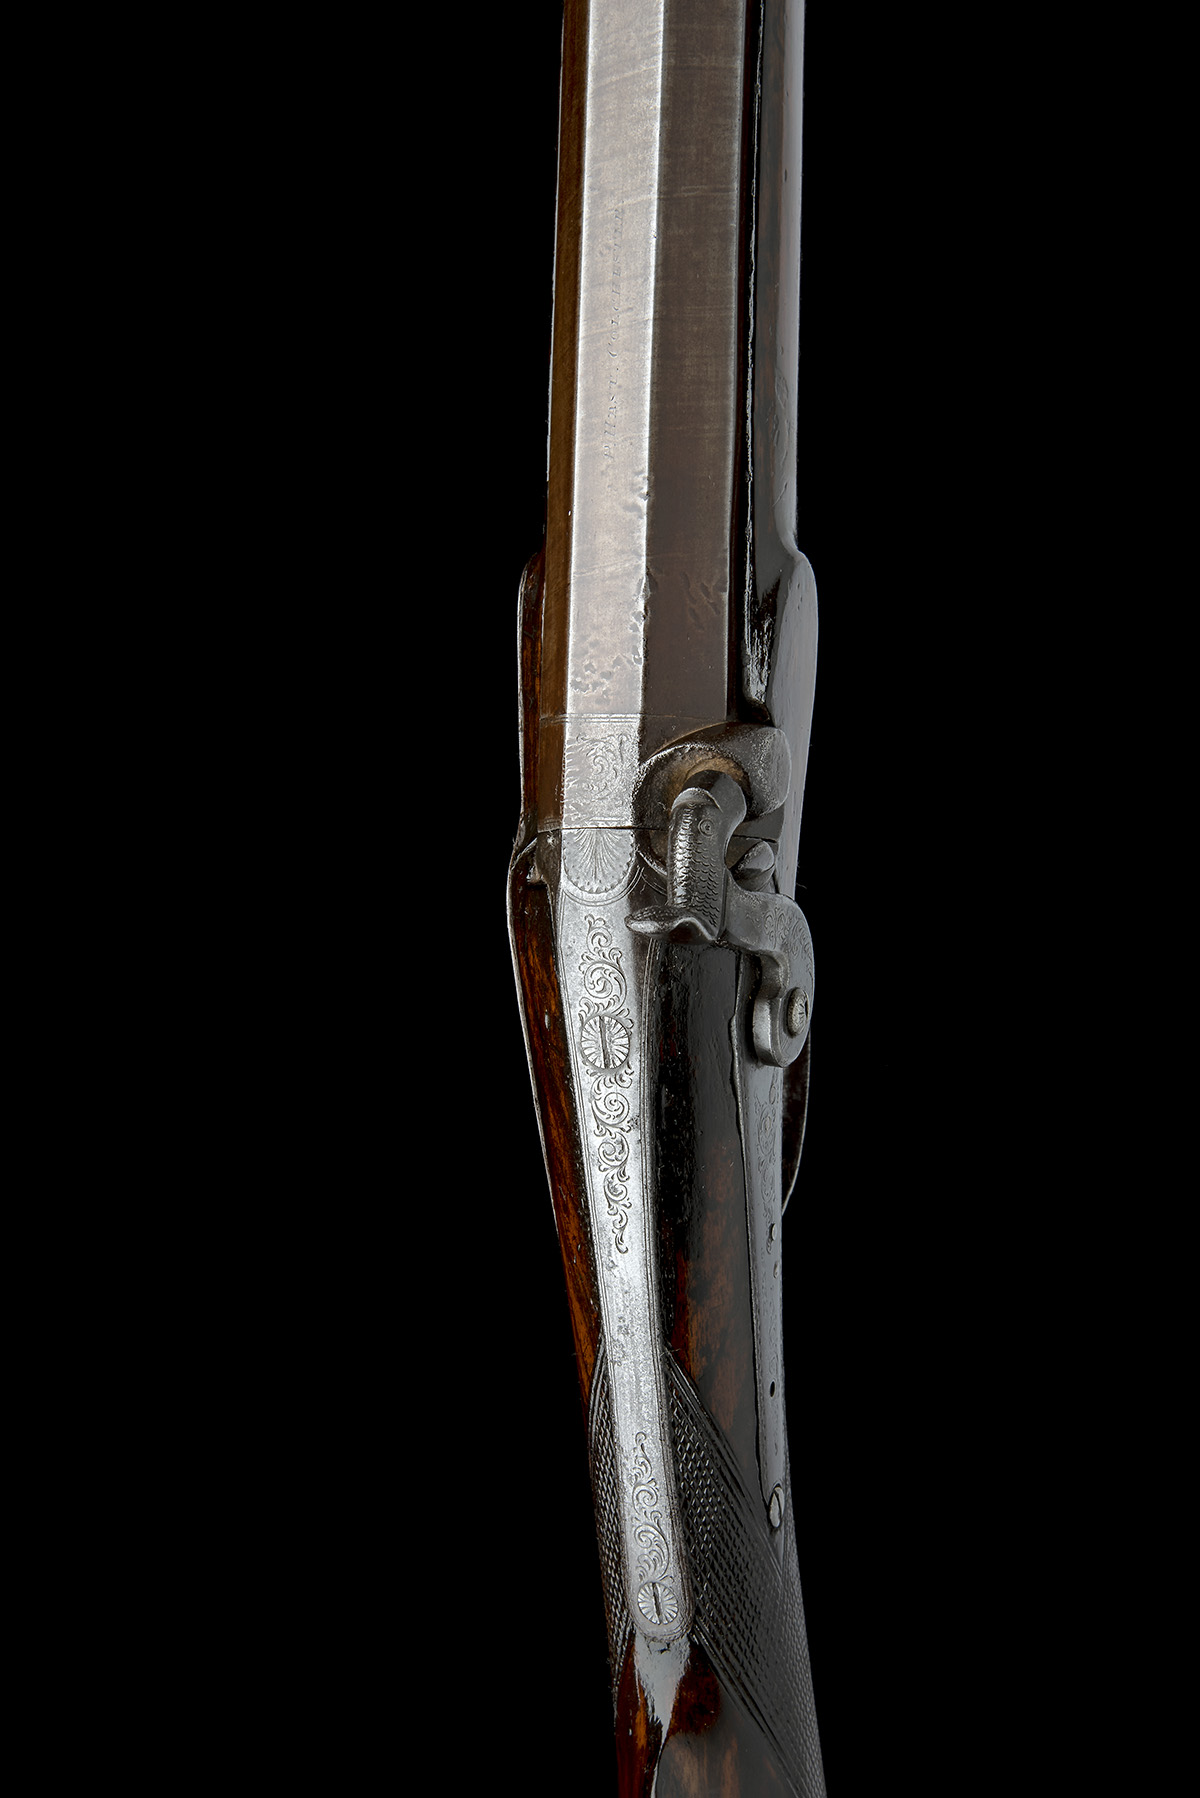 P. HAST, COLCHESTER A 9-BORE PERCUSSION SINGLE-BARRELLED FOWLING-PIECE, no visible serial number, - Image 6 of 8